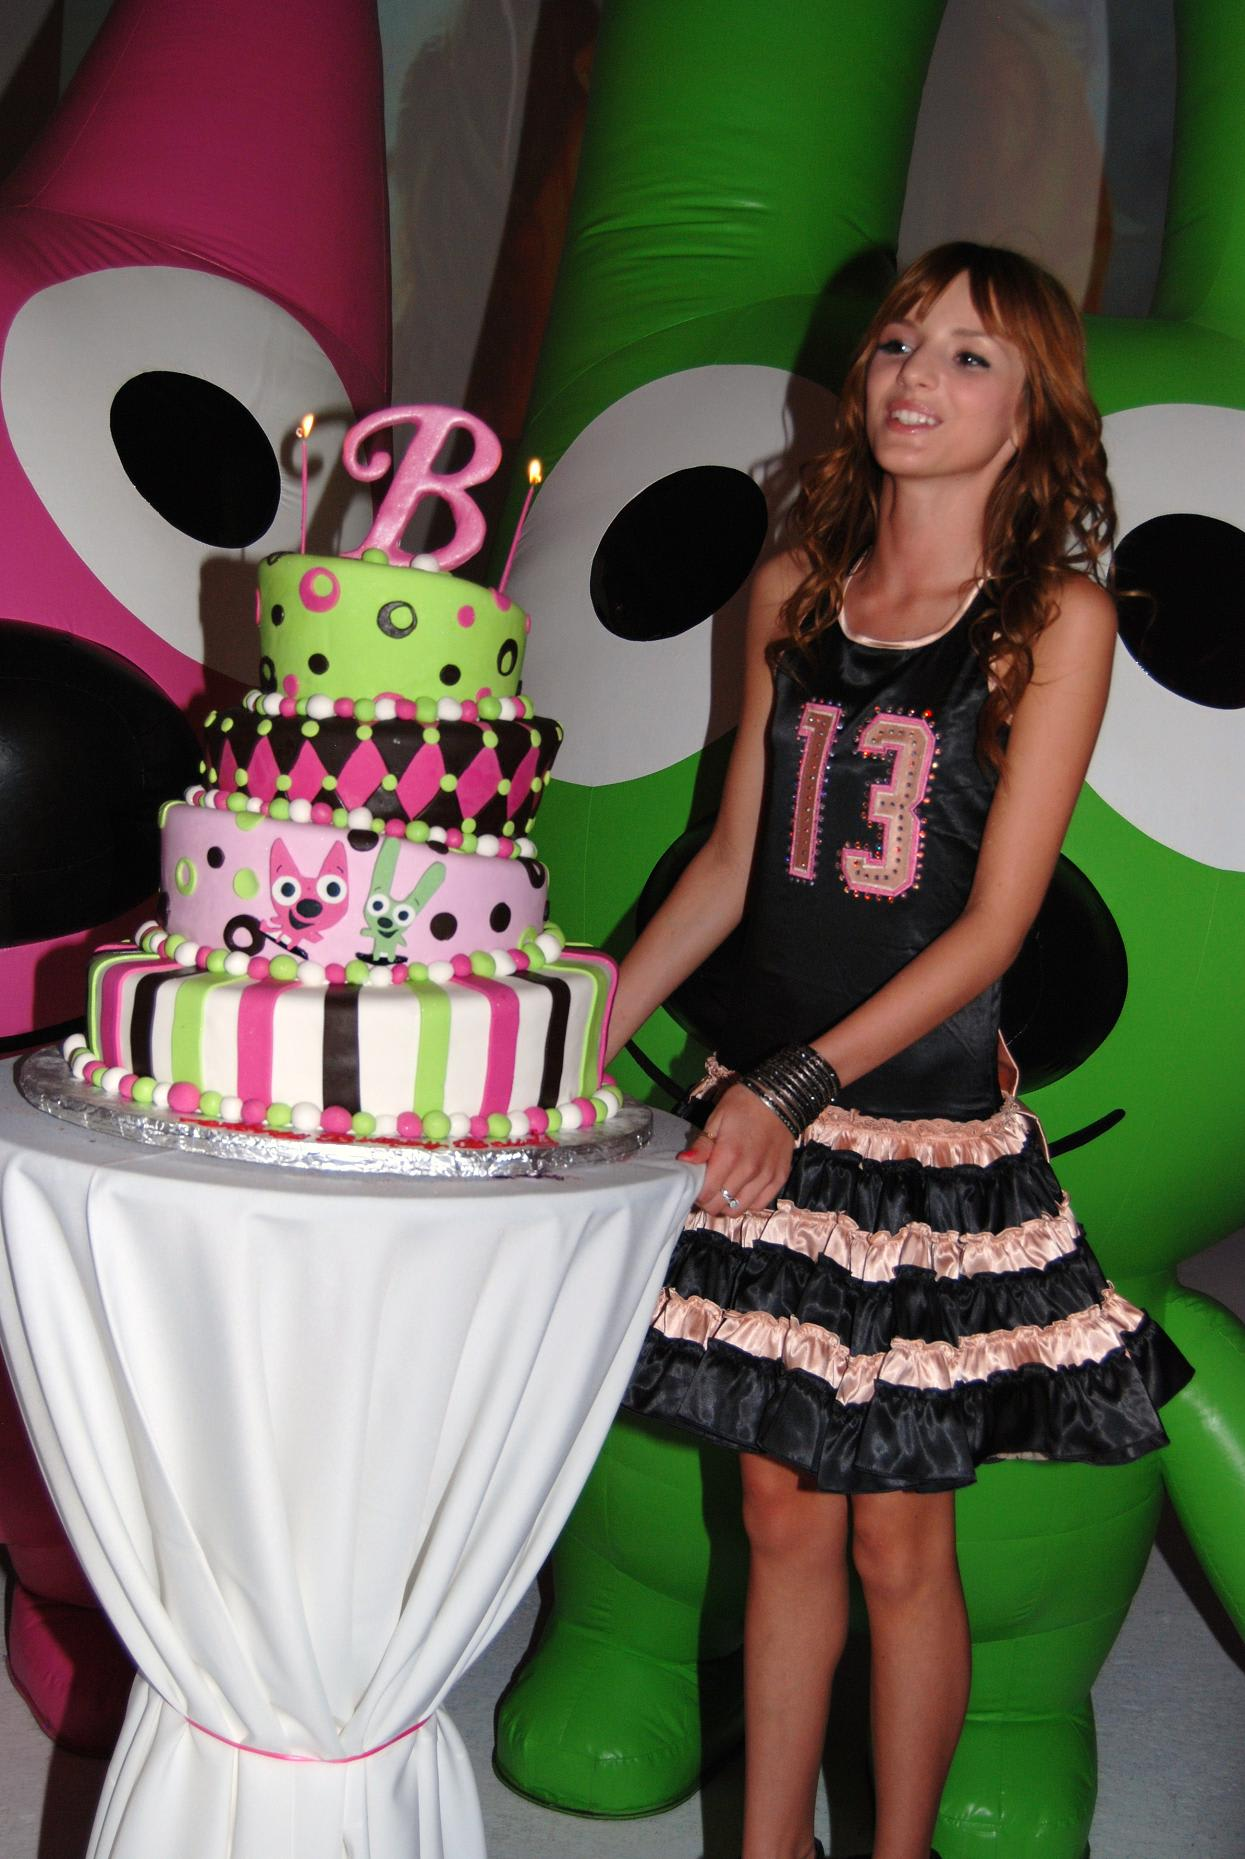 Bella Thorne 13th Birthday Party 09 Oct 2010 2